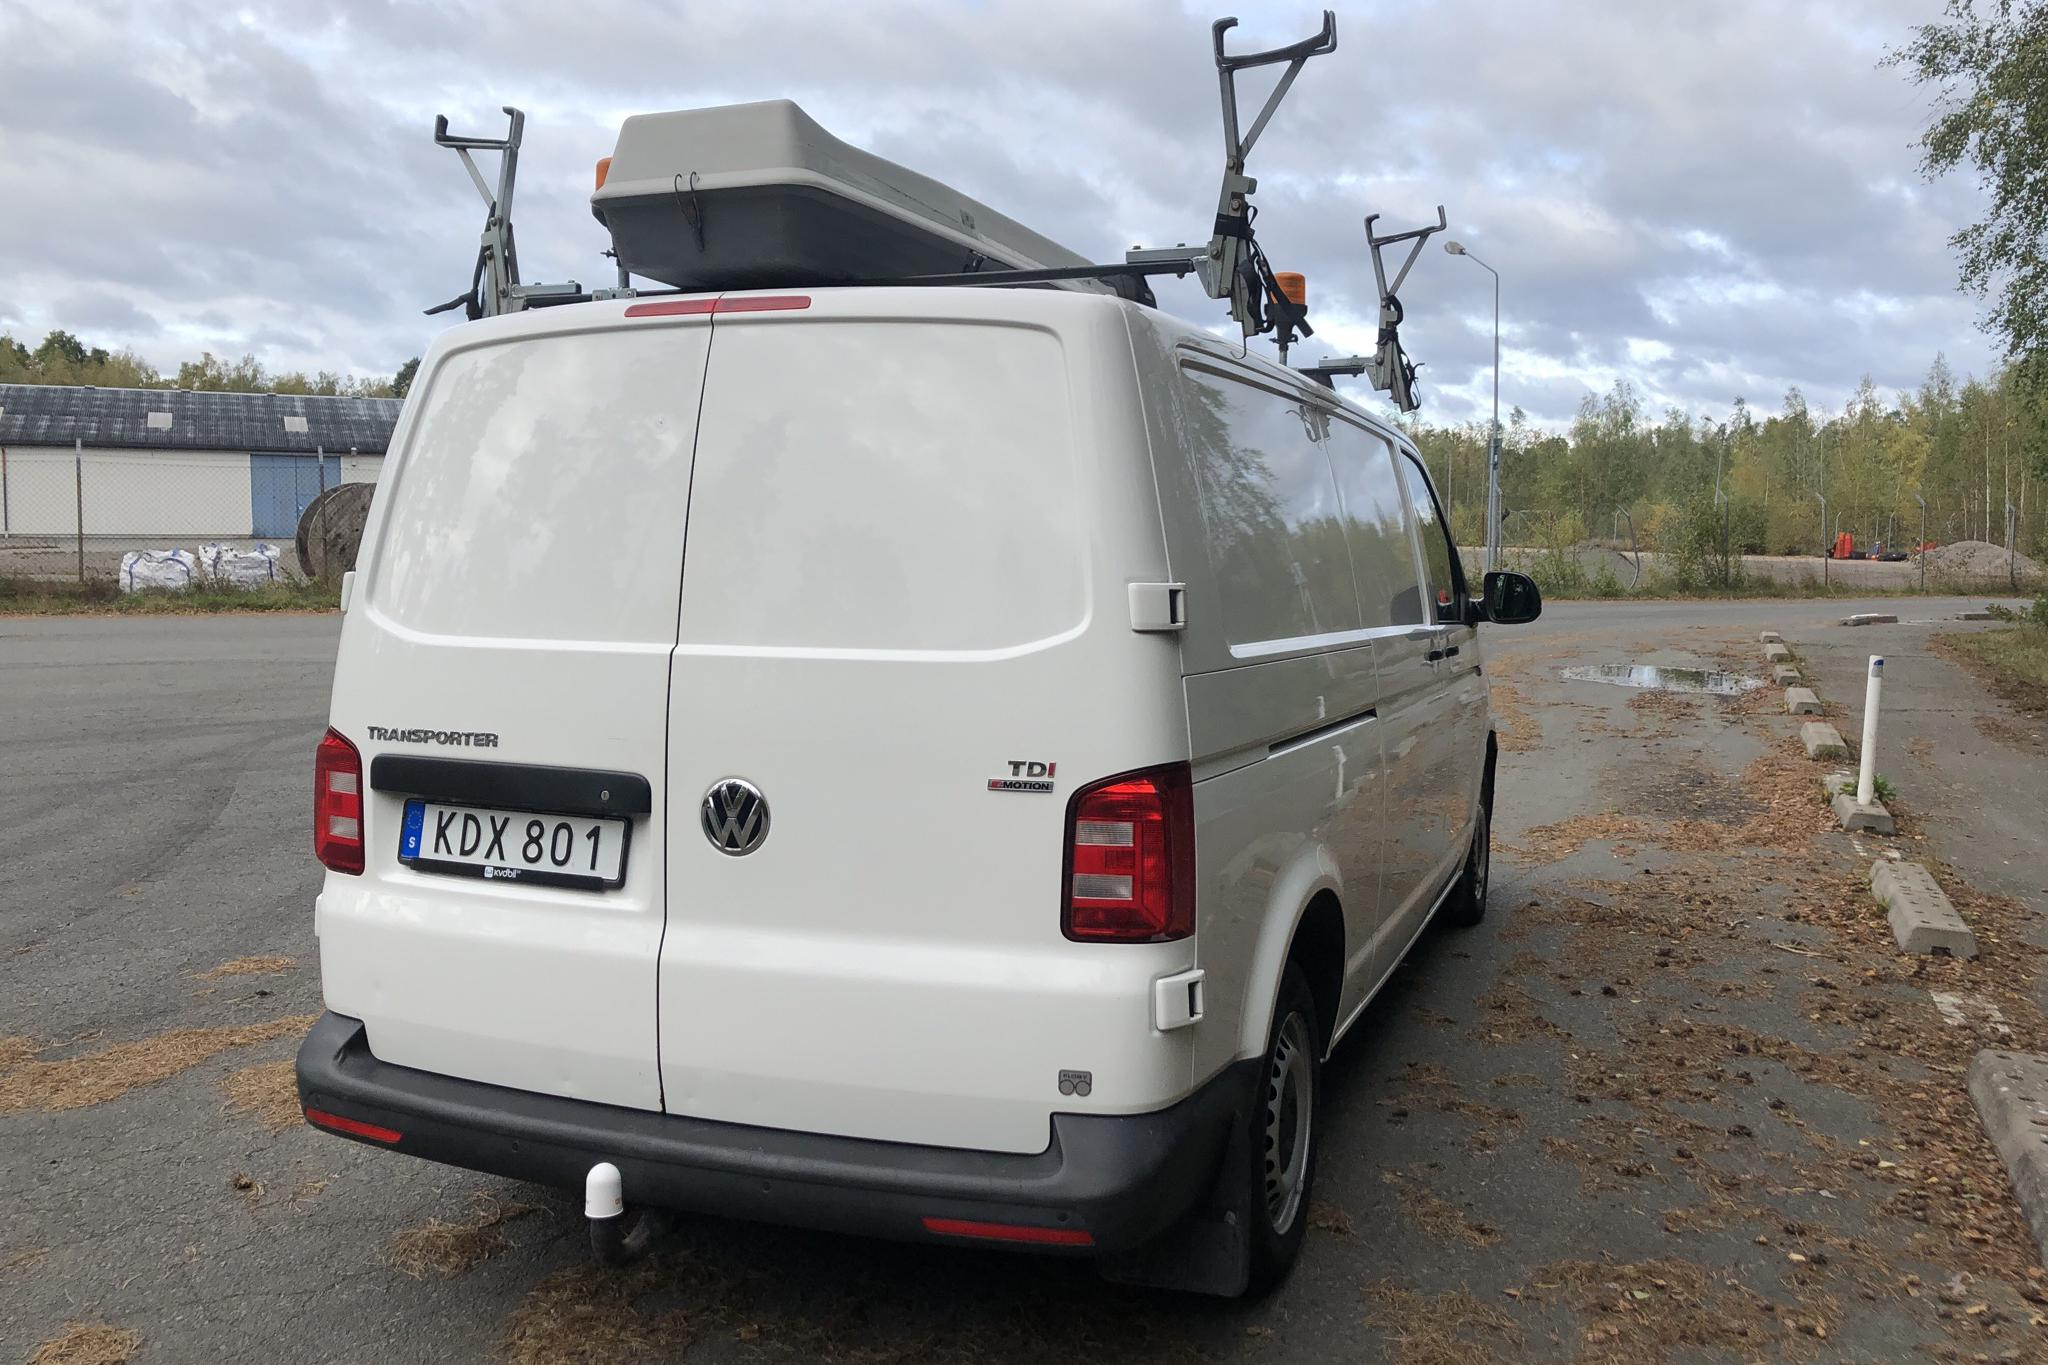 VW Transporter T6 2.0 TDI BMT Skåp 4MOTION (140hk) - 0 km - Manual - white - 2016